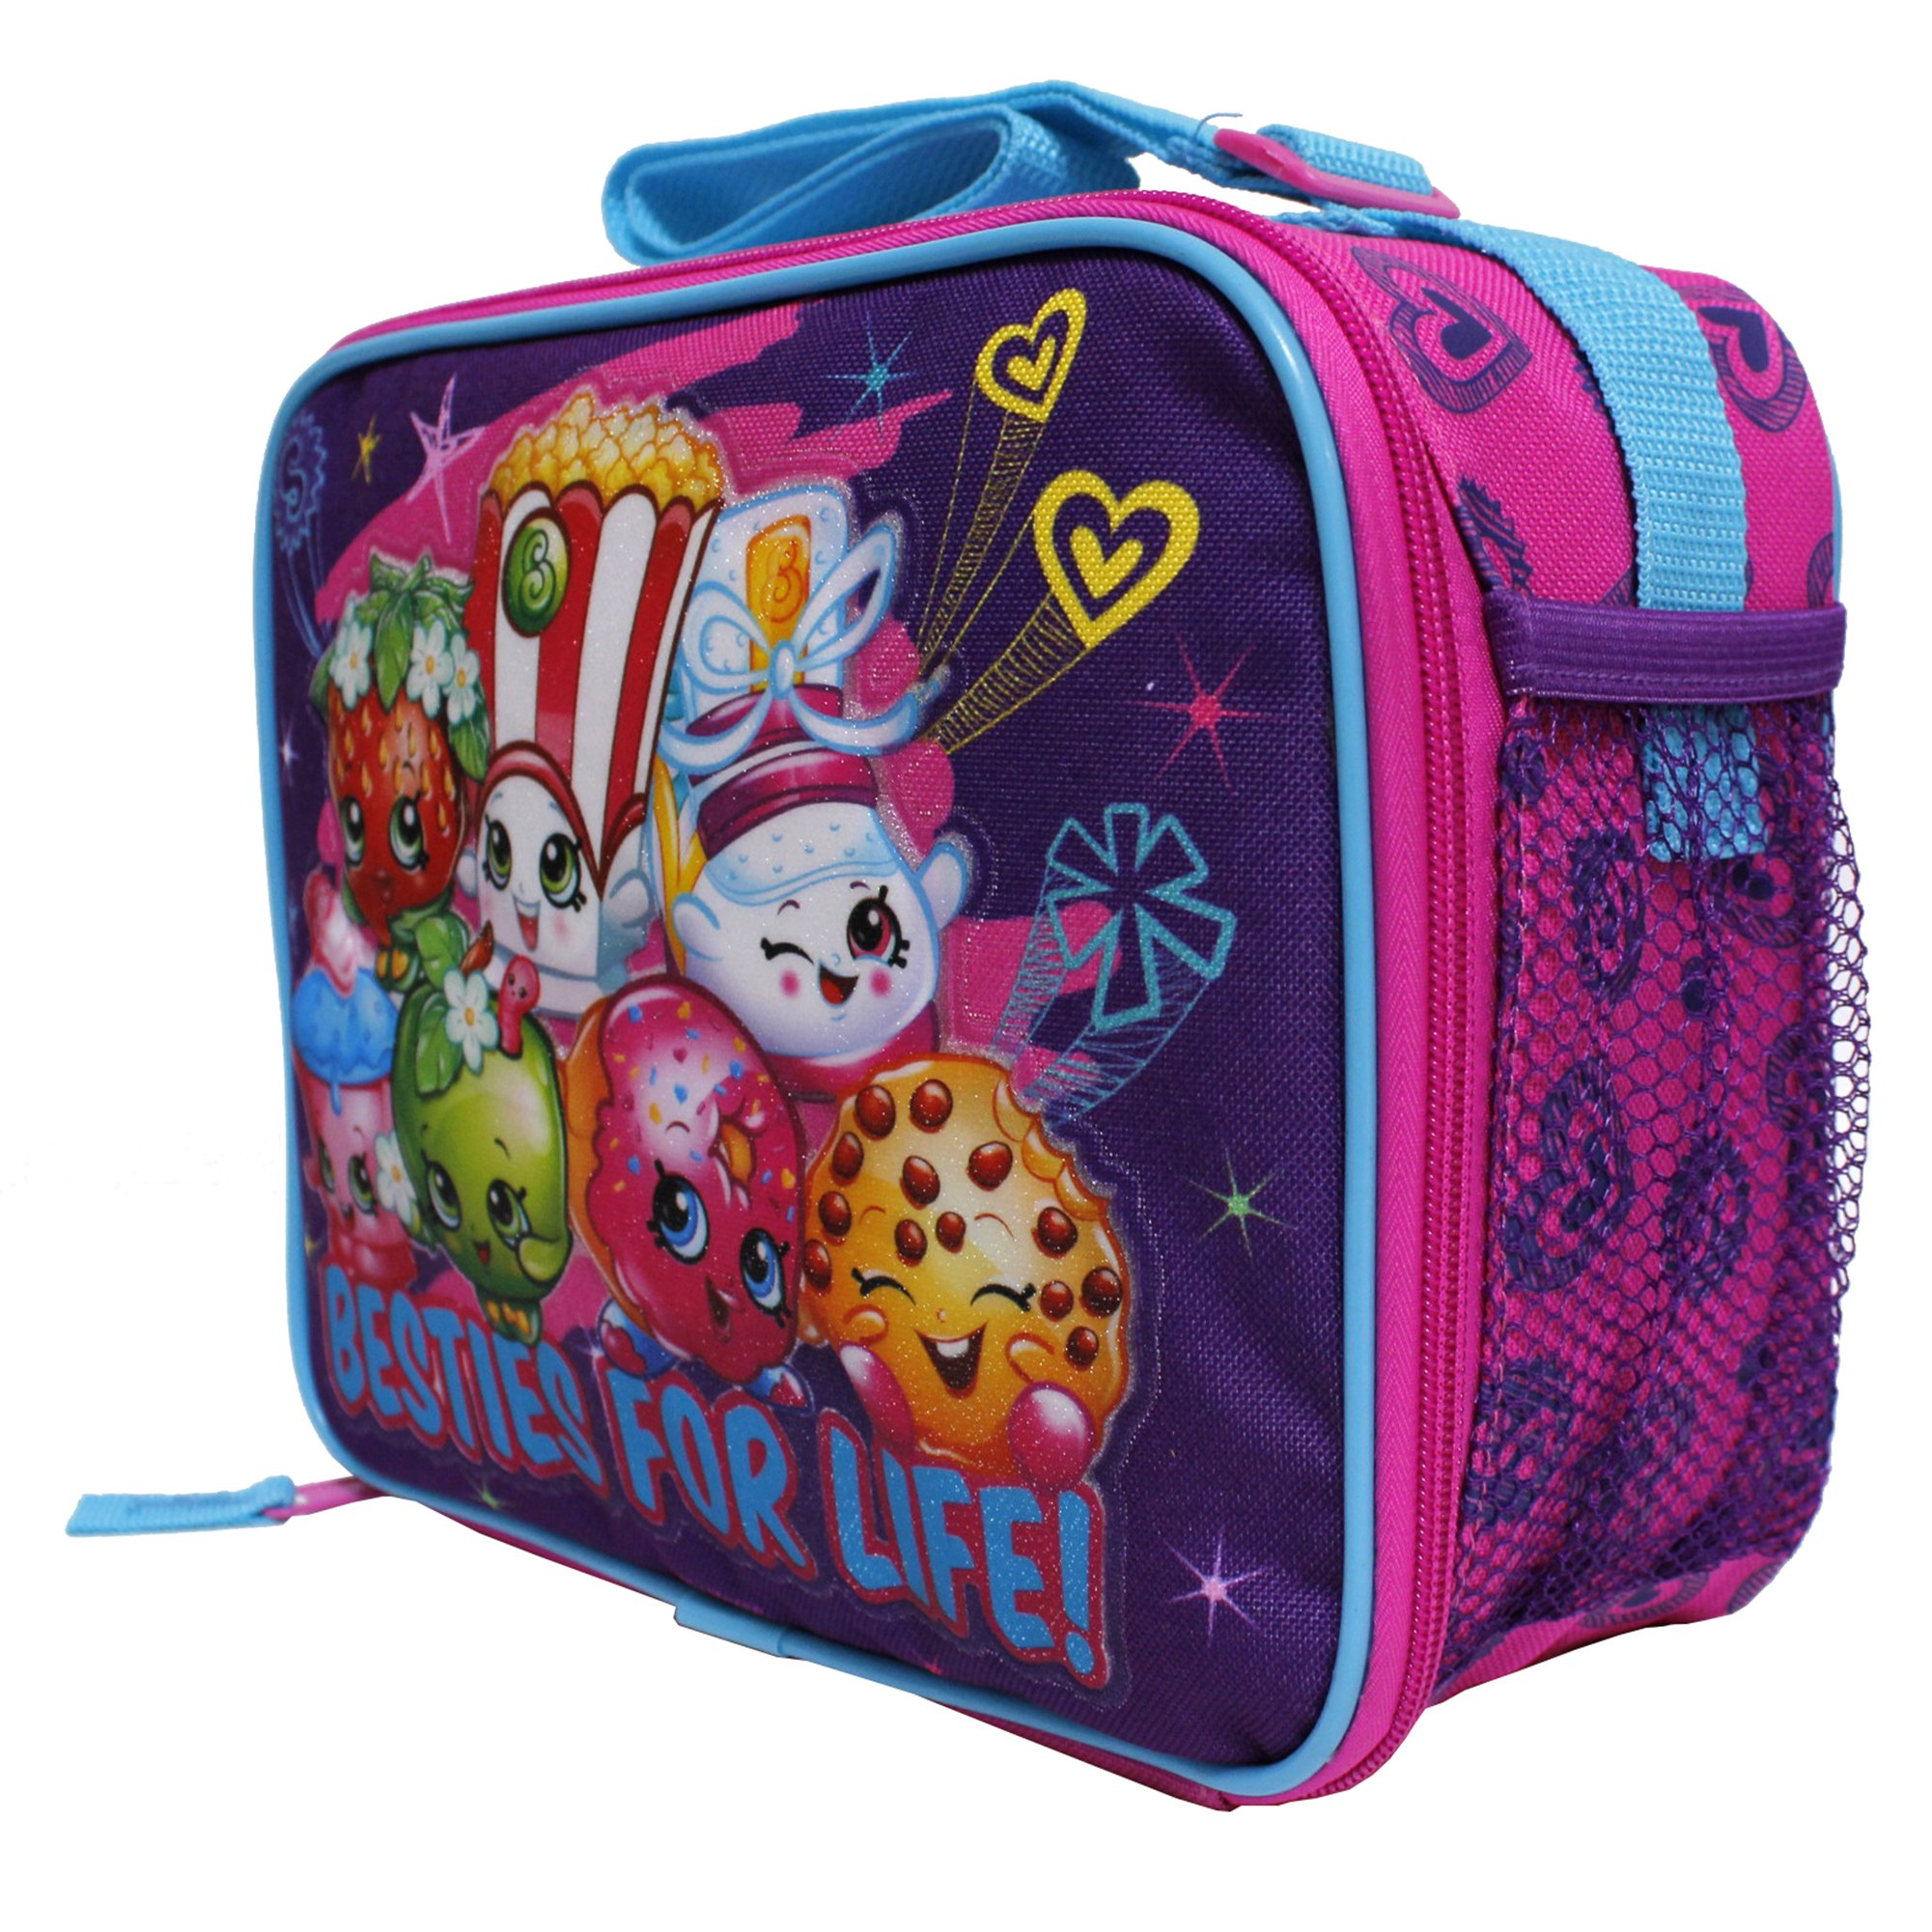 Girls Canvas Insulated Lunch Bag 52366 Moose Shopkins Besties for Life